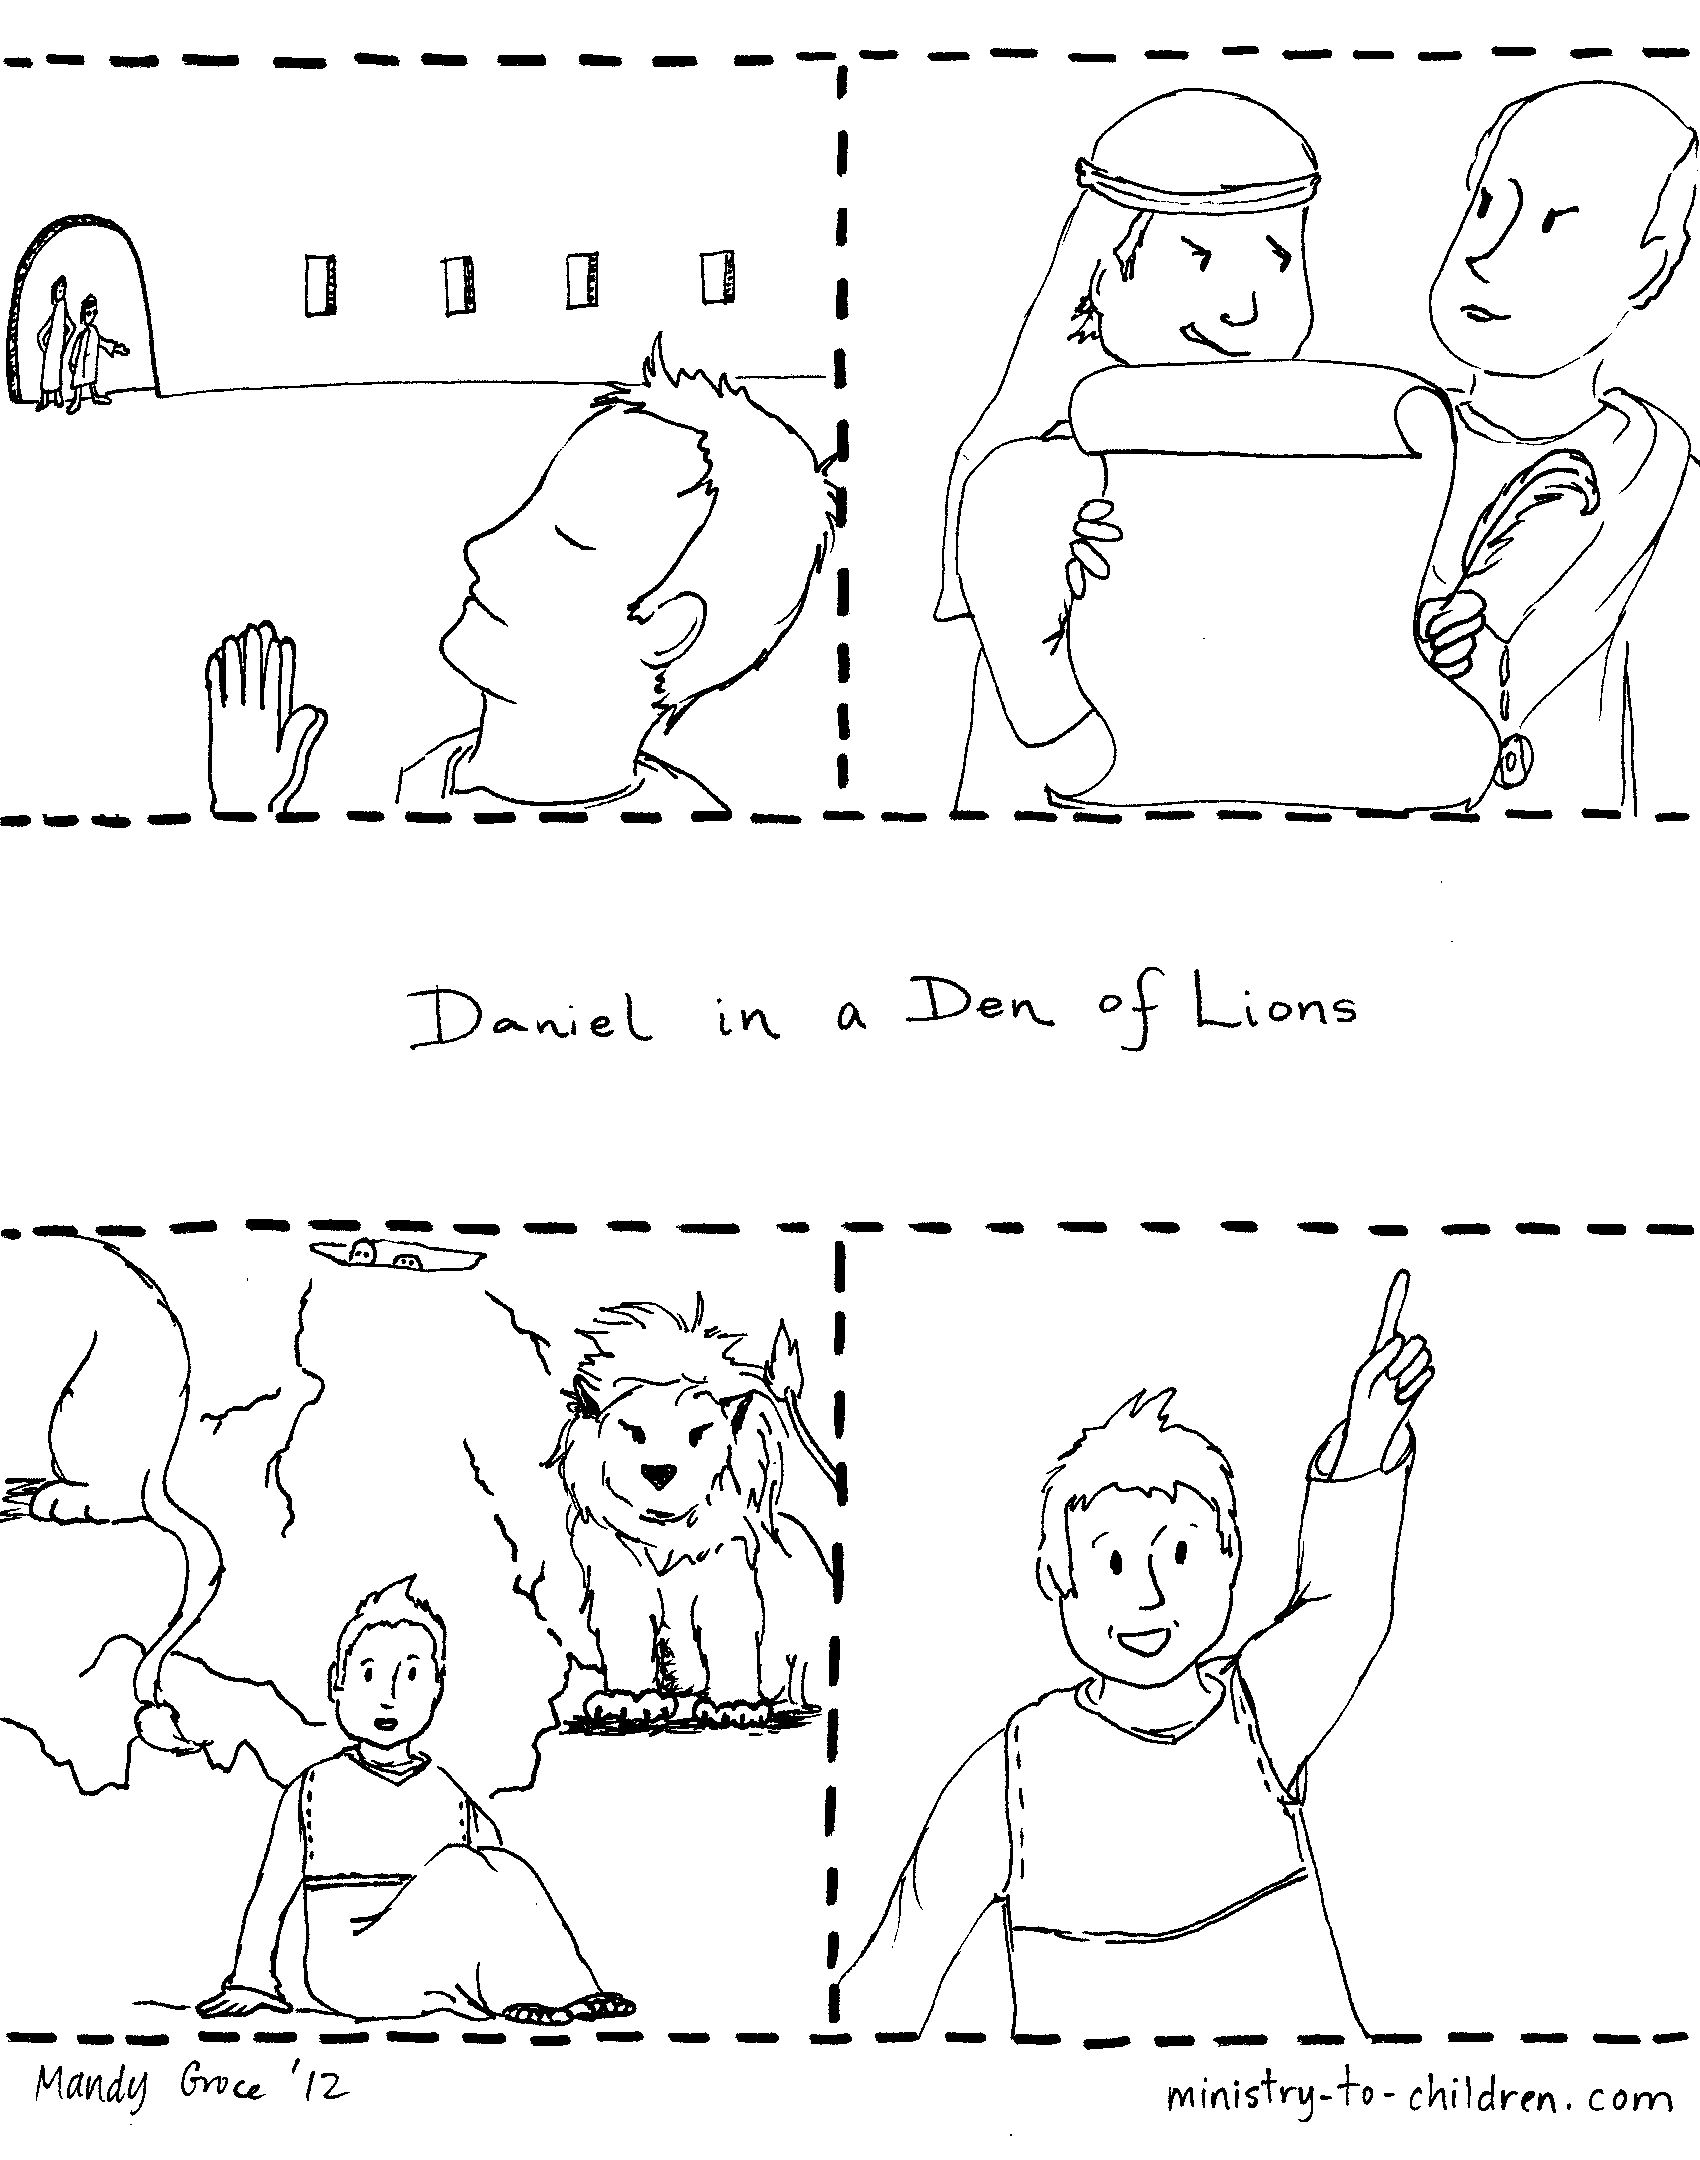 daniel sequence story coloring page lots of ot colouring pages here - Bible Story Coloring Pages Daniel